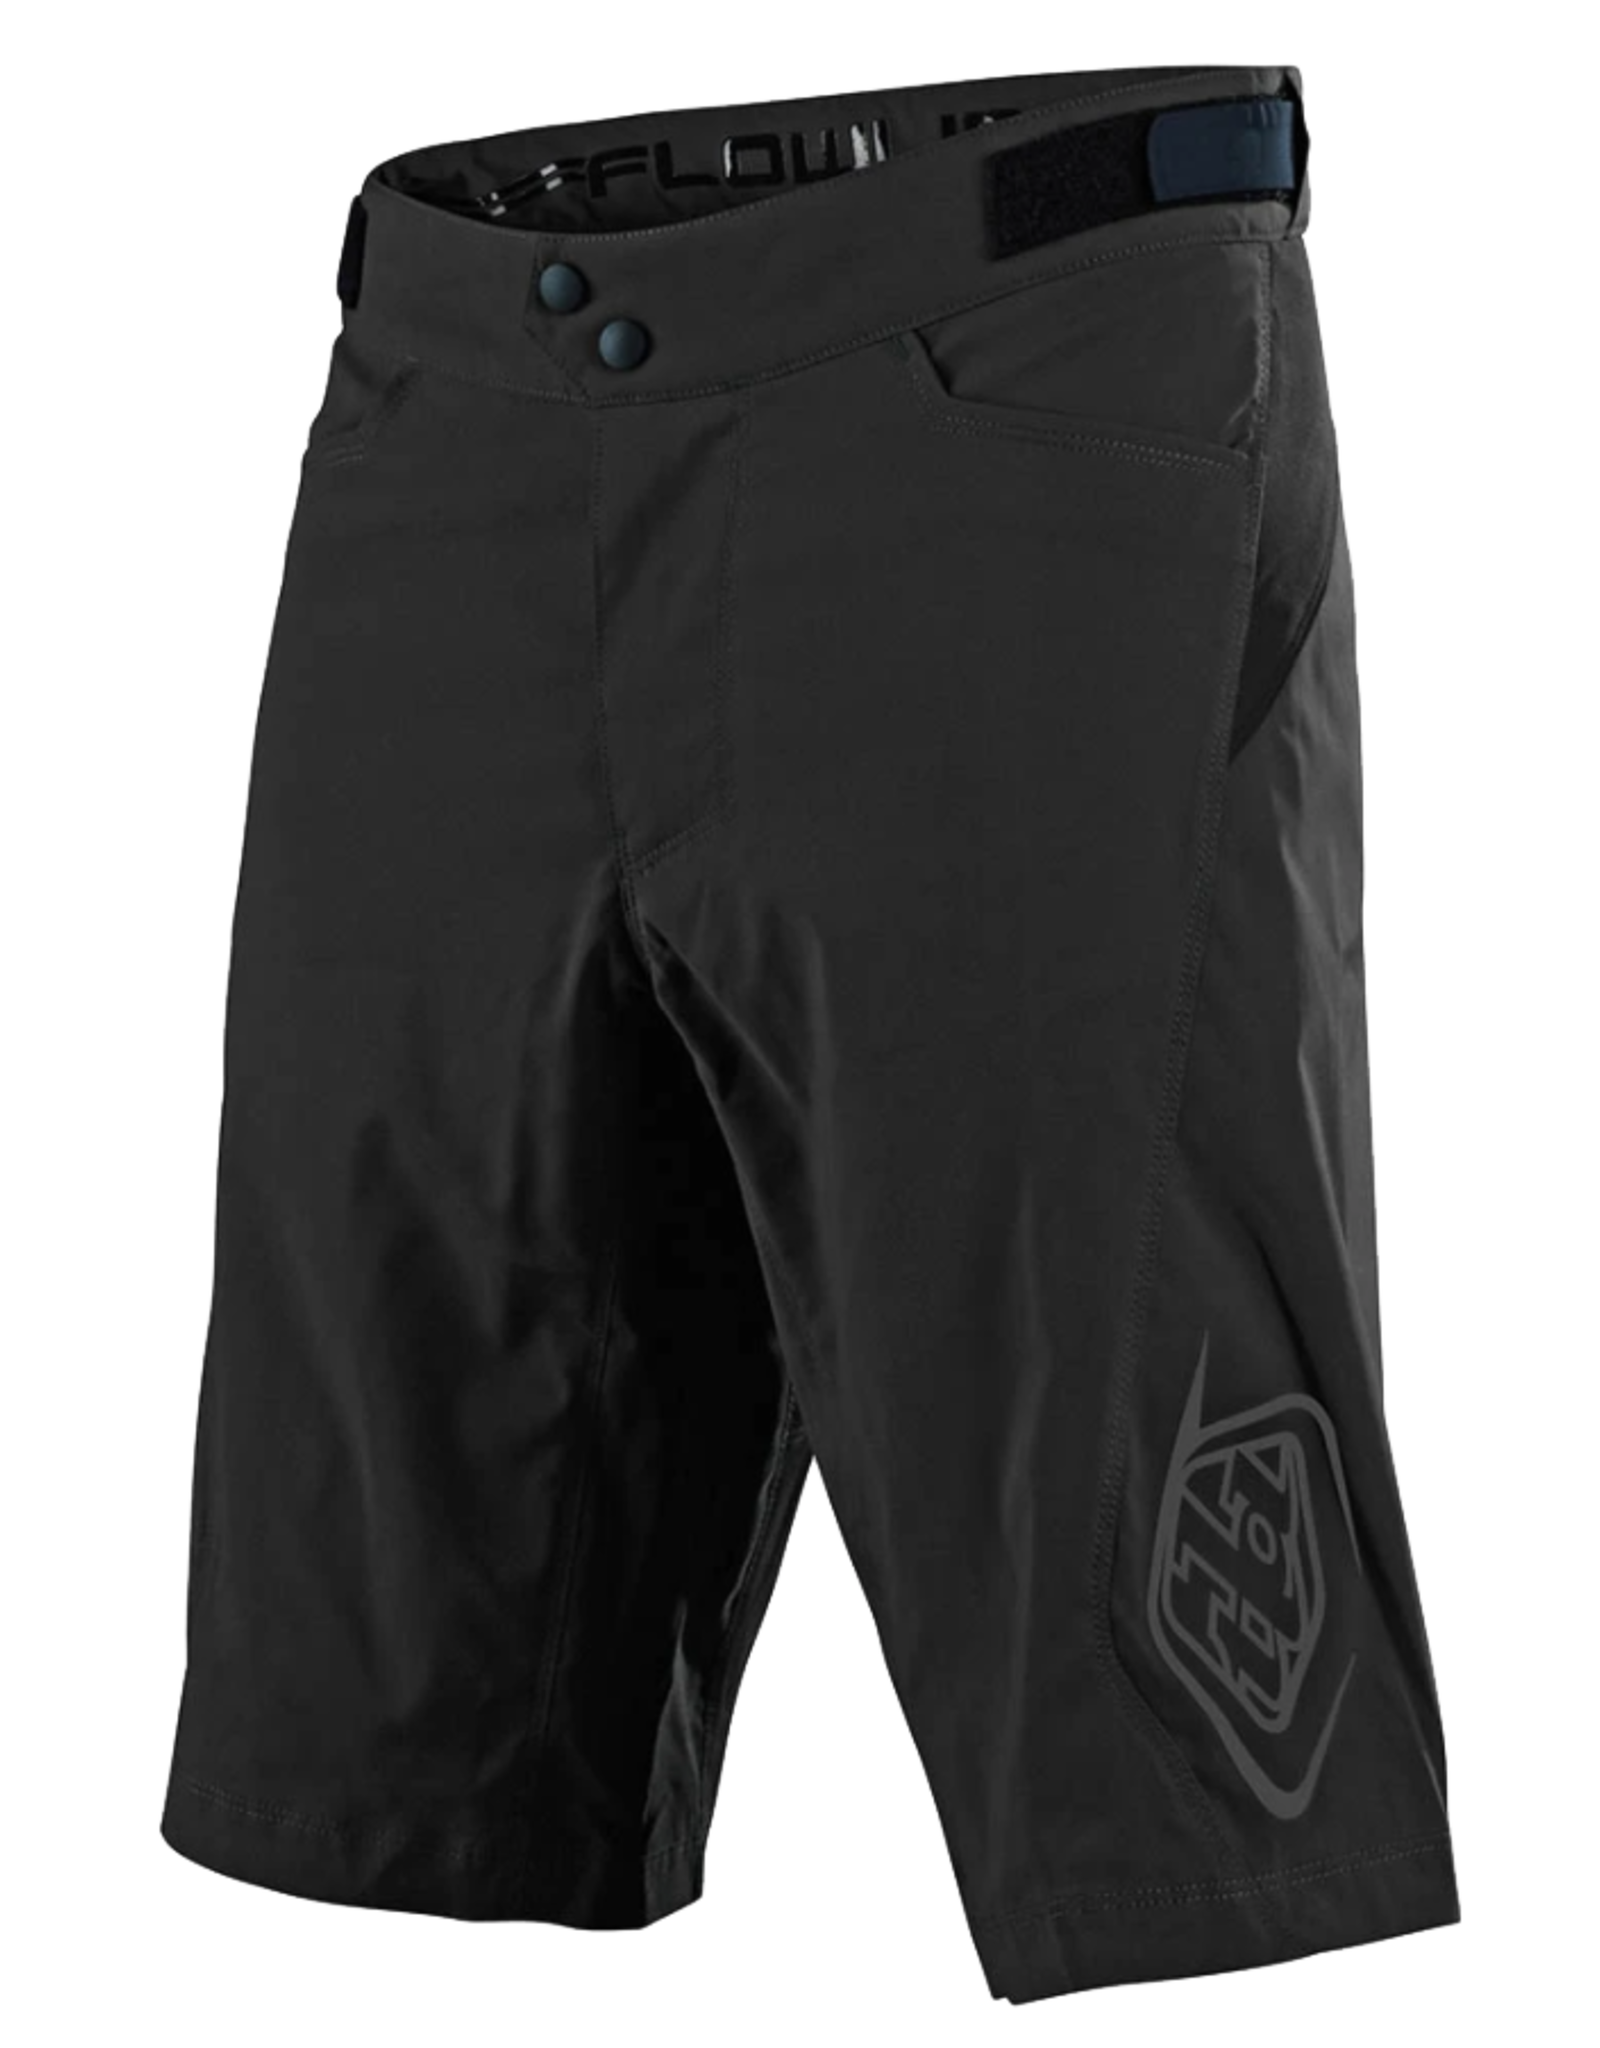 Troy Lee Designs Flowline Short w Liner